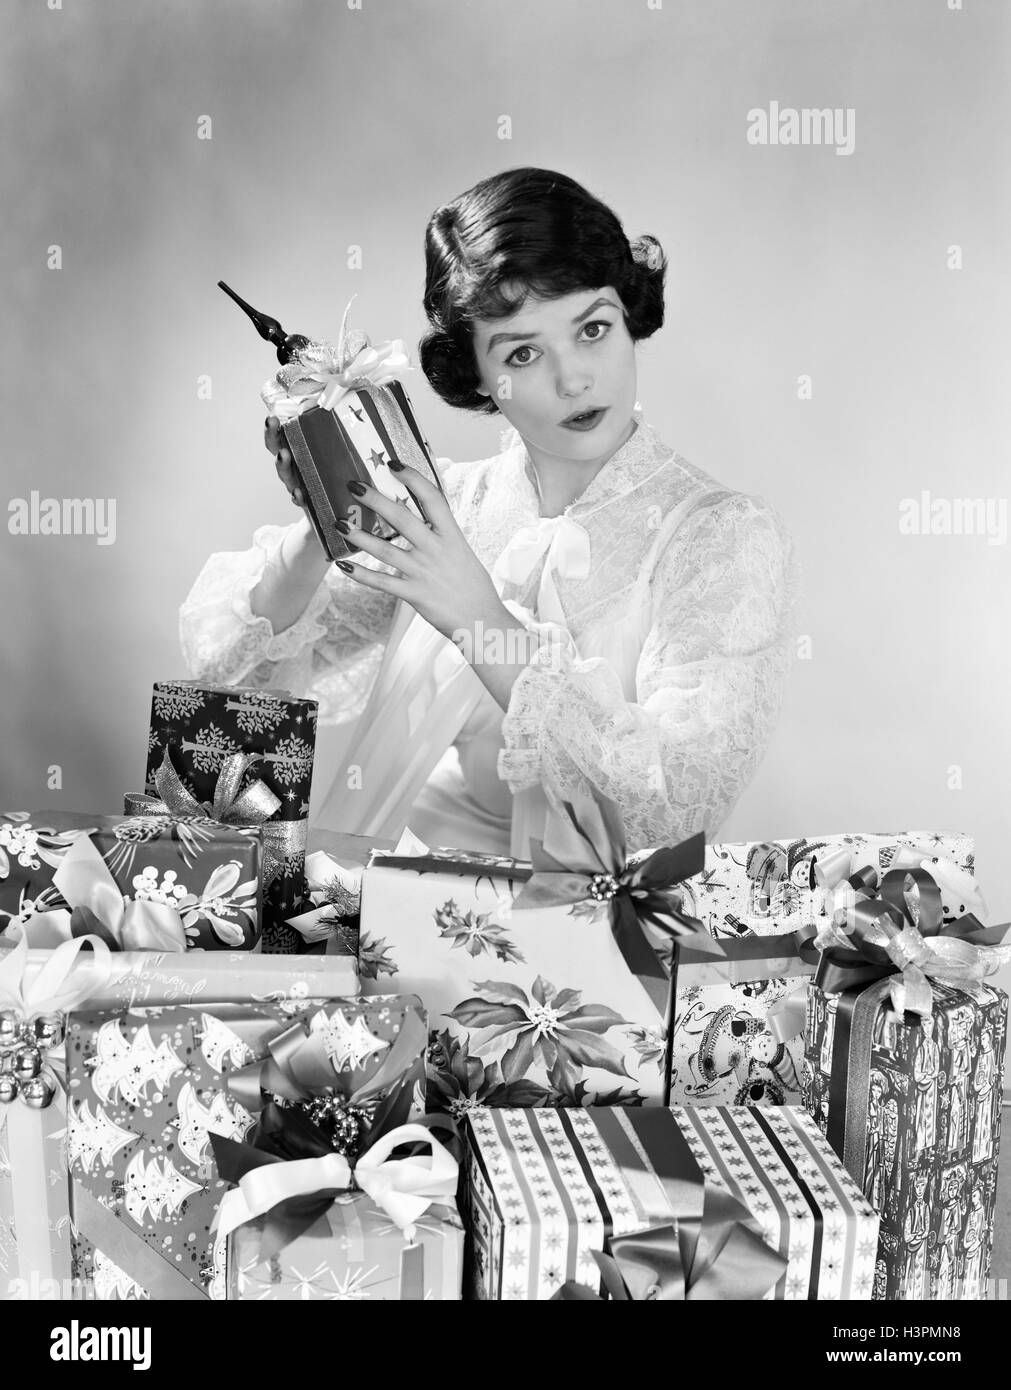 1950s WOMAN WEARING NIGHTGOWN CHRISTMAS MORNING SITTING BY PILE OF CHRISTMAS PRESENTS HOLDING SHAKING ONE PRESENT - Stock Image